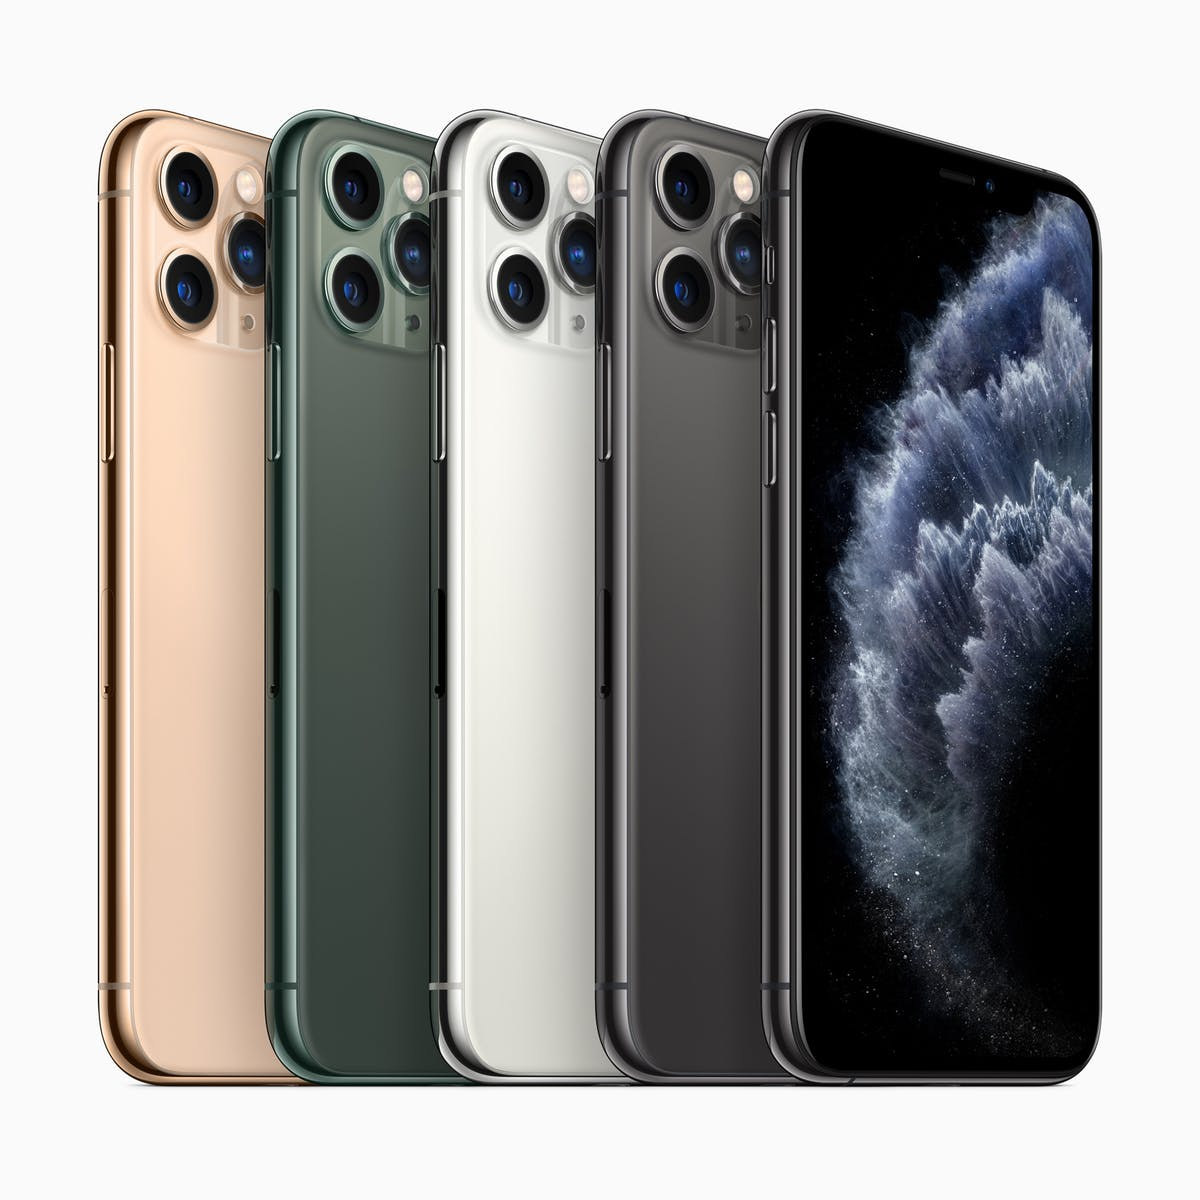 Apple iPhone 11: When Does It Come Out? Pre-Order, Delivery, and Sale Dates